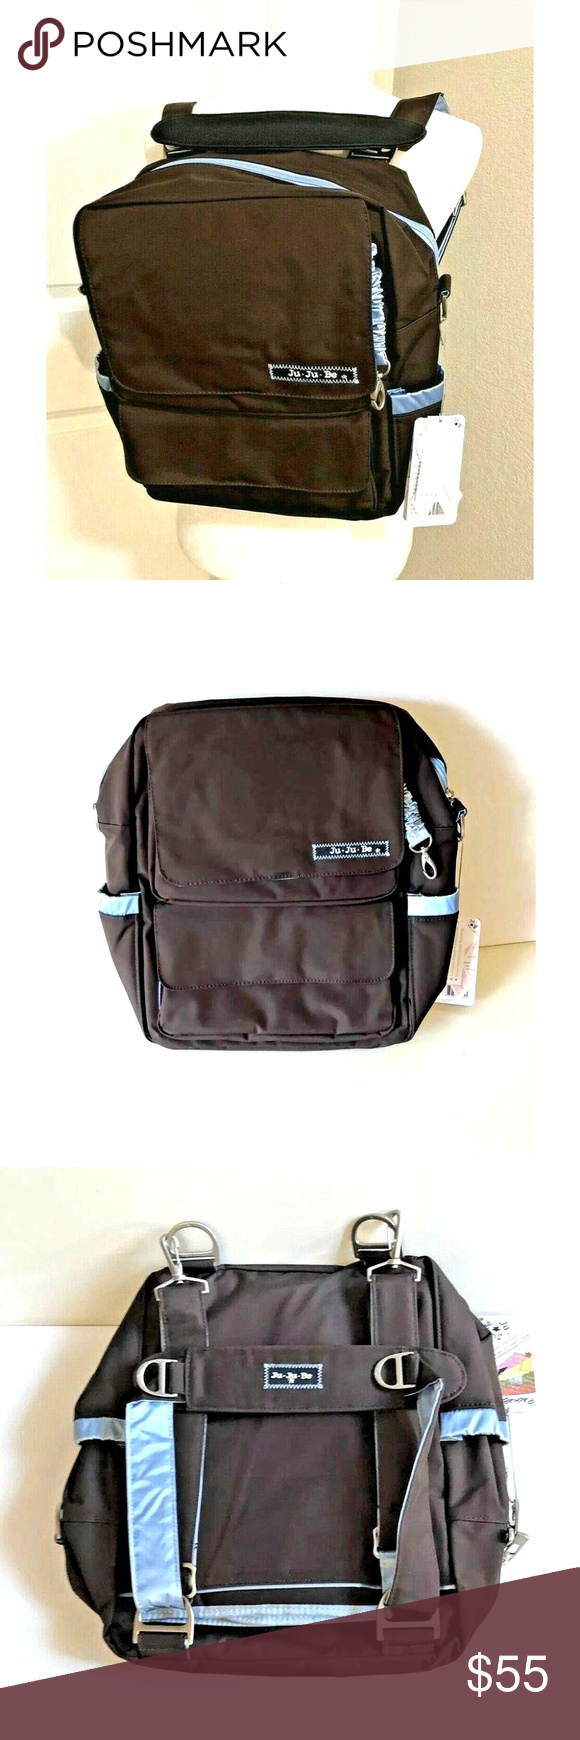 JuJuBe PackaBe Diaper Backpack Messenger Bag NWT in 2020 ...